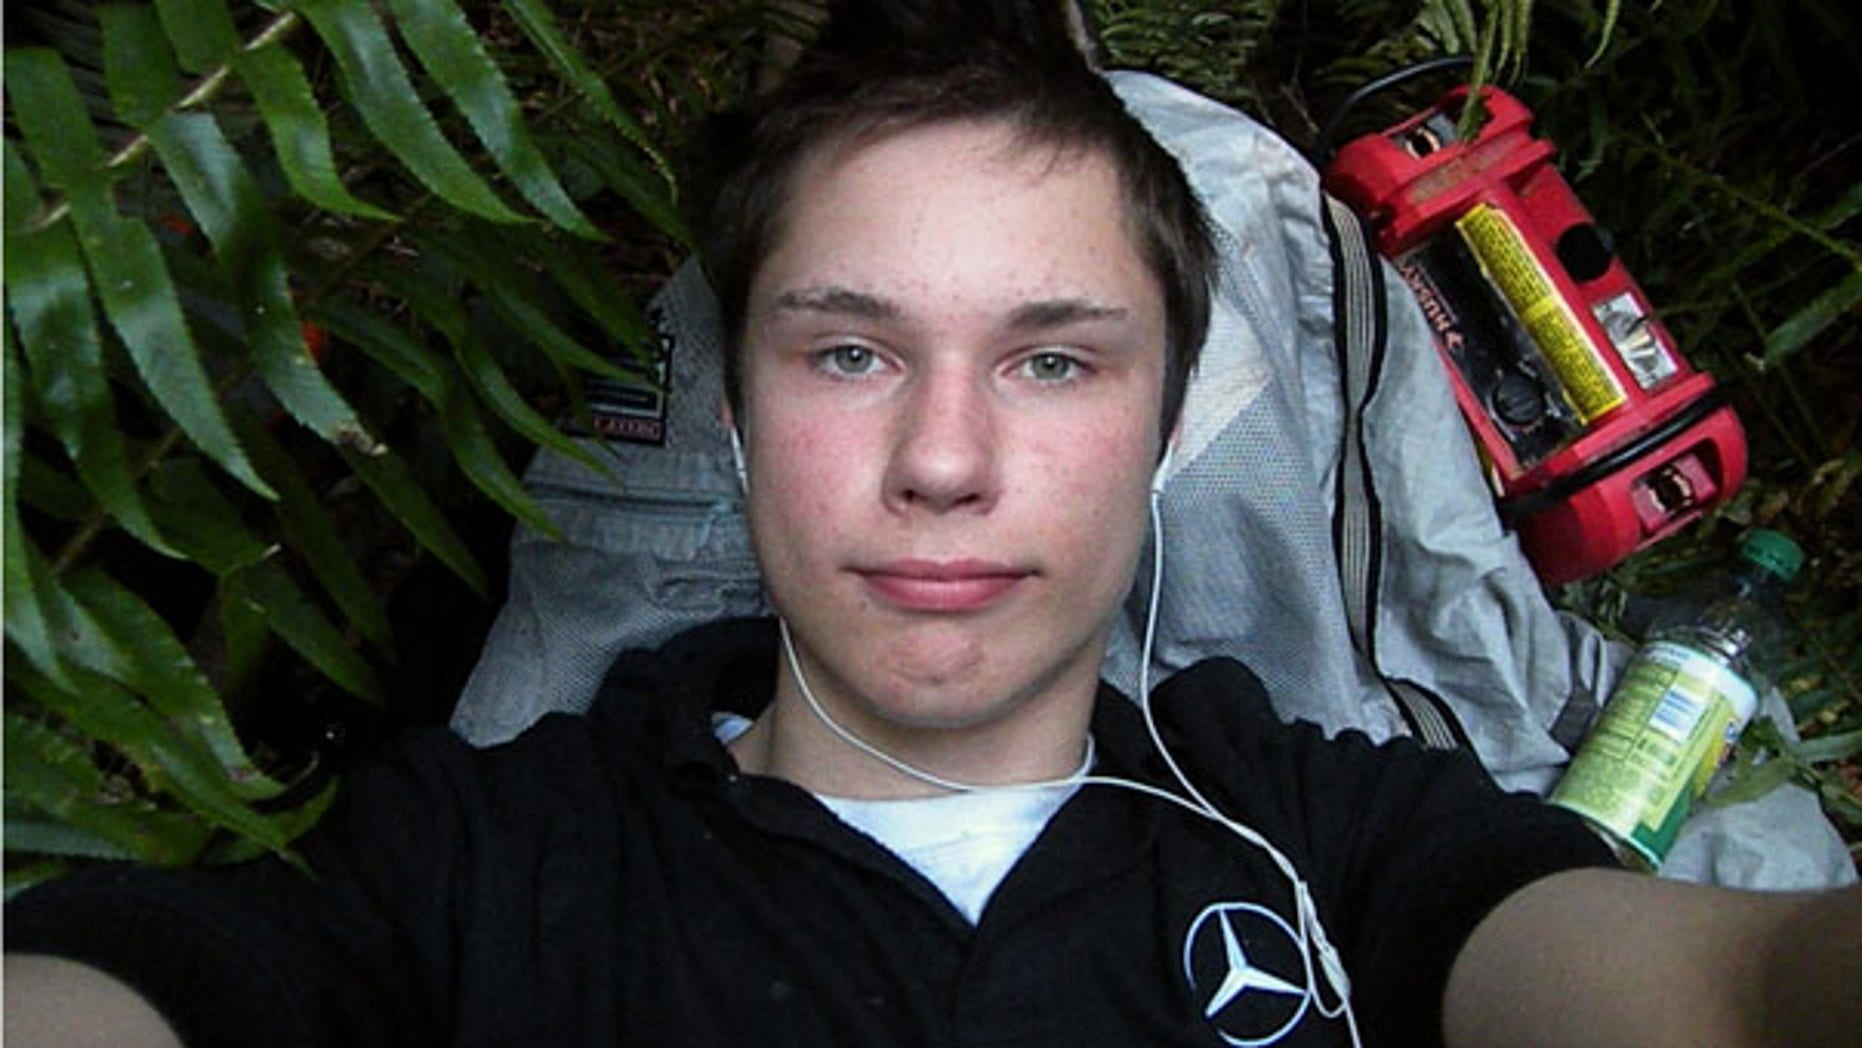 FILE: Colton Harris-Moore, the so-called 'Barefoot Bandit,' is seen in a July 2009 photo.